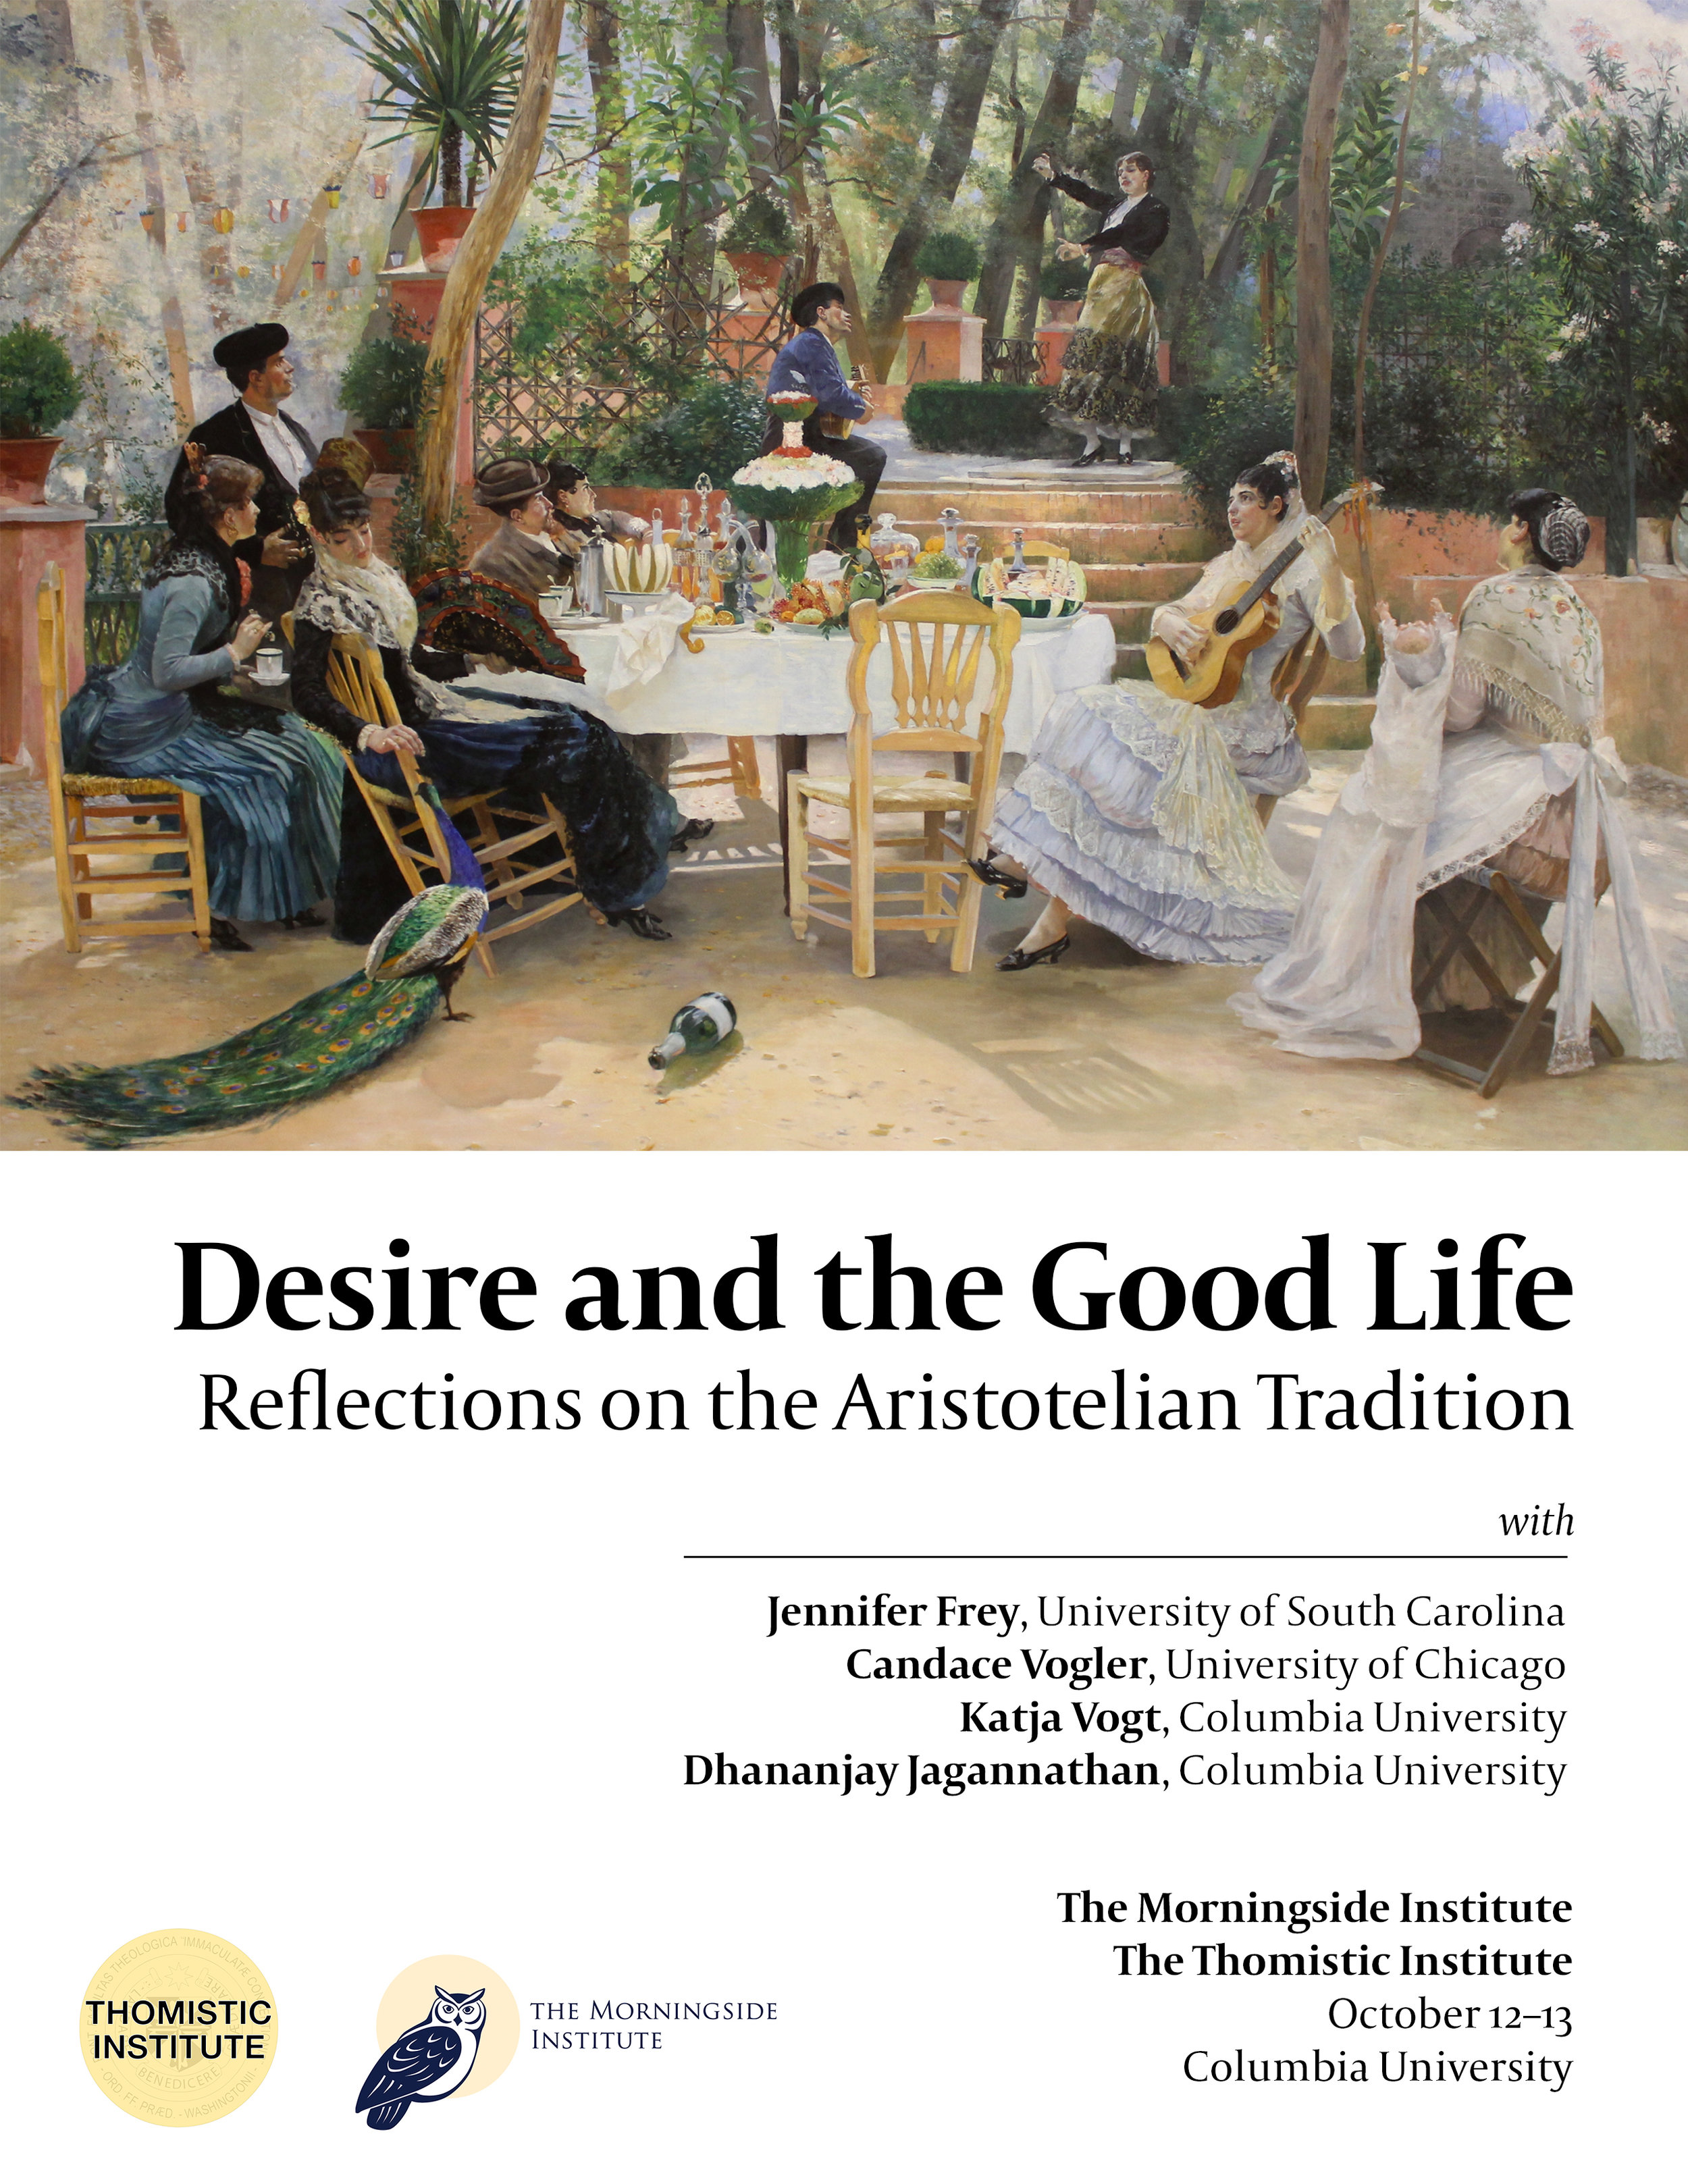 TI-Columbia-Conference-desire-and-the-good-life.jpg